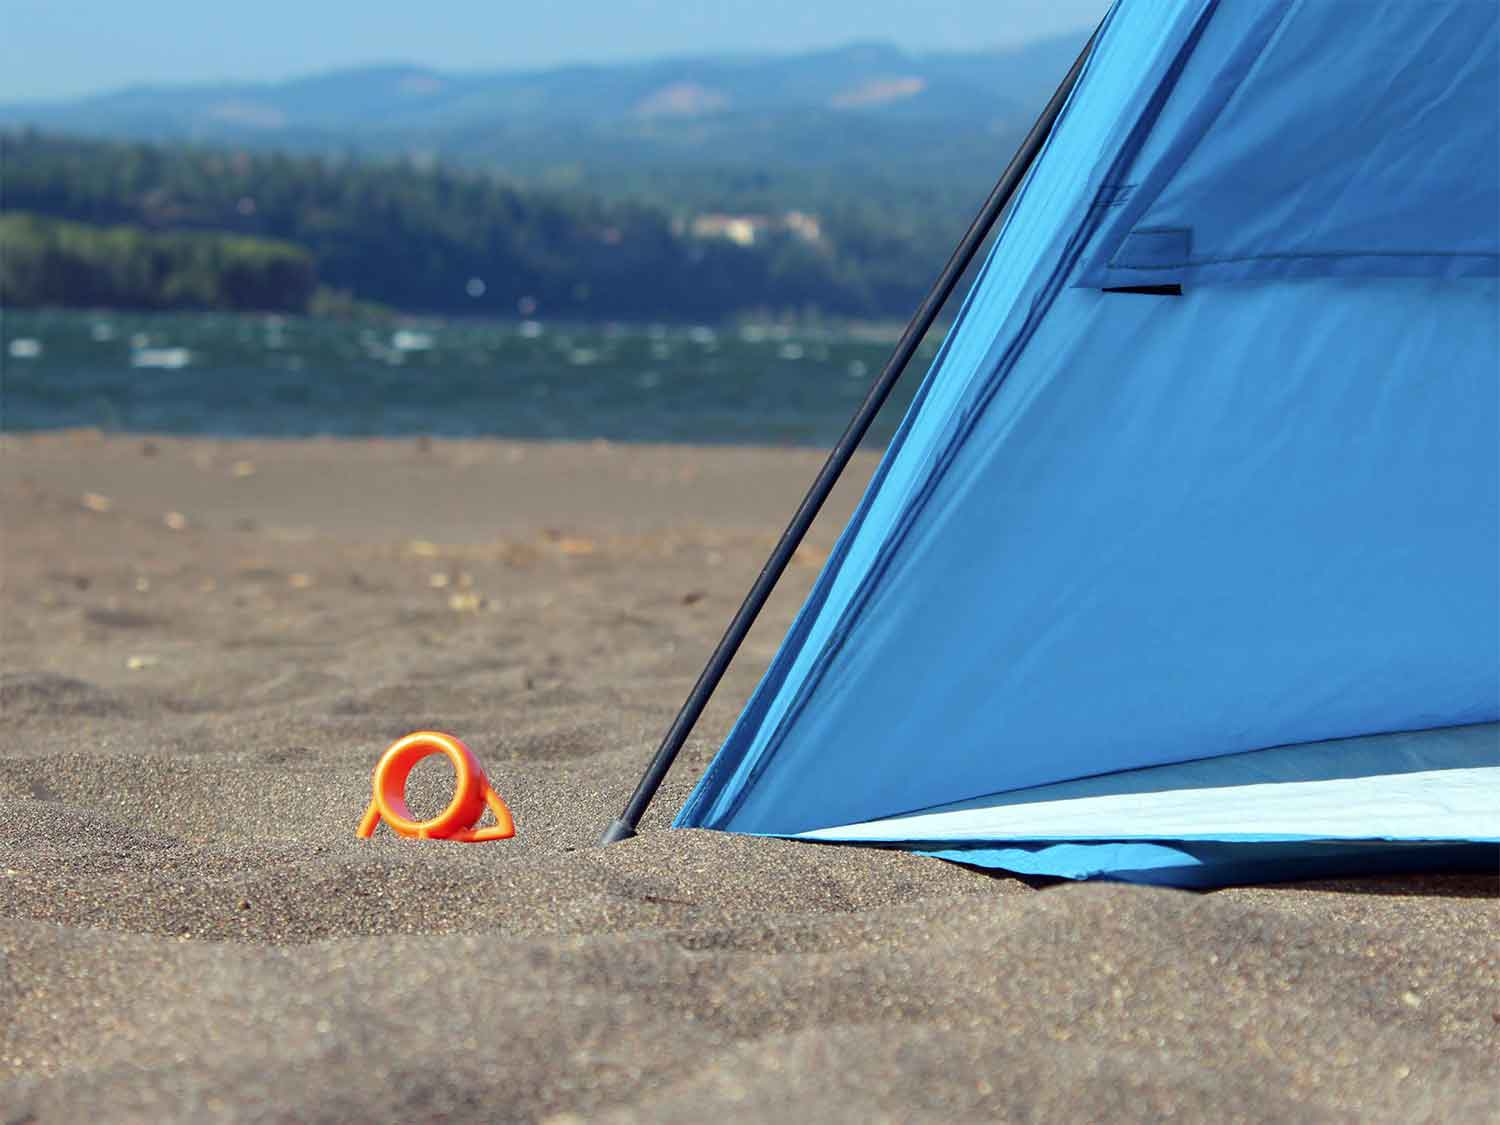 My tent anchored with short aluminum stakes bucked and caved in its front wall scooping wind like a sail. & The u0027Orange Screwu0027 Is Ultimate Tent Stake